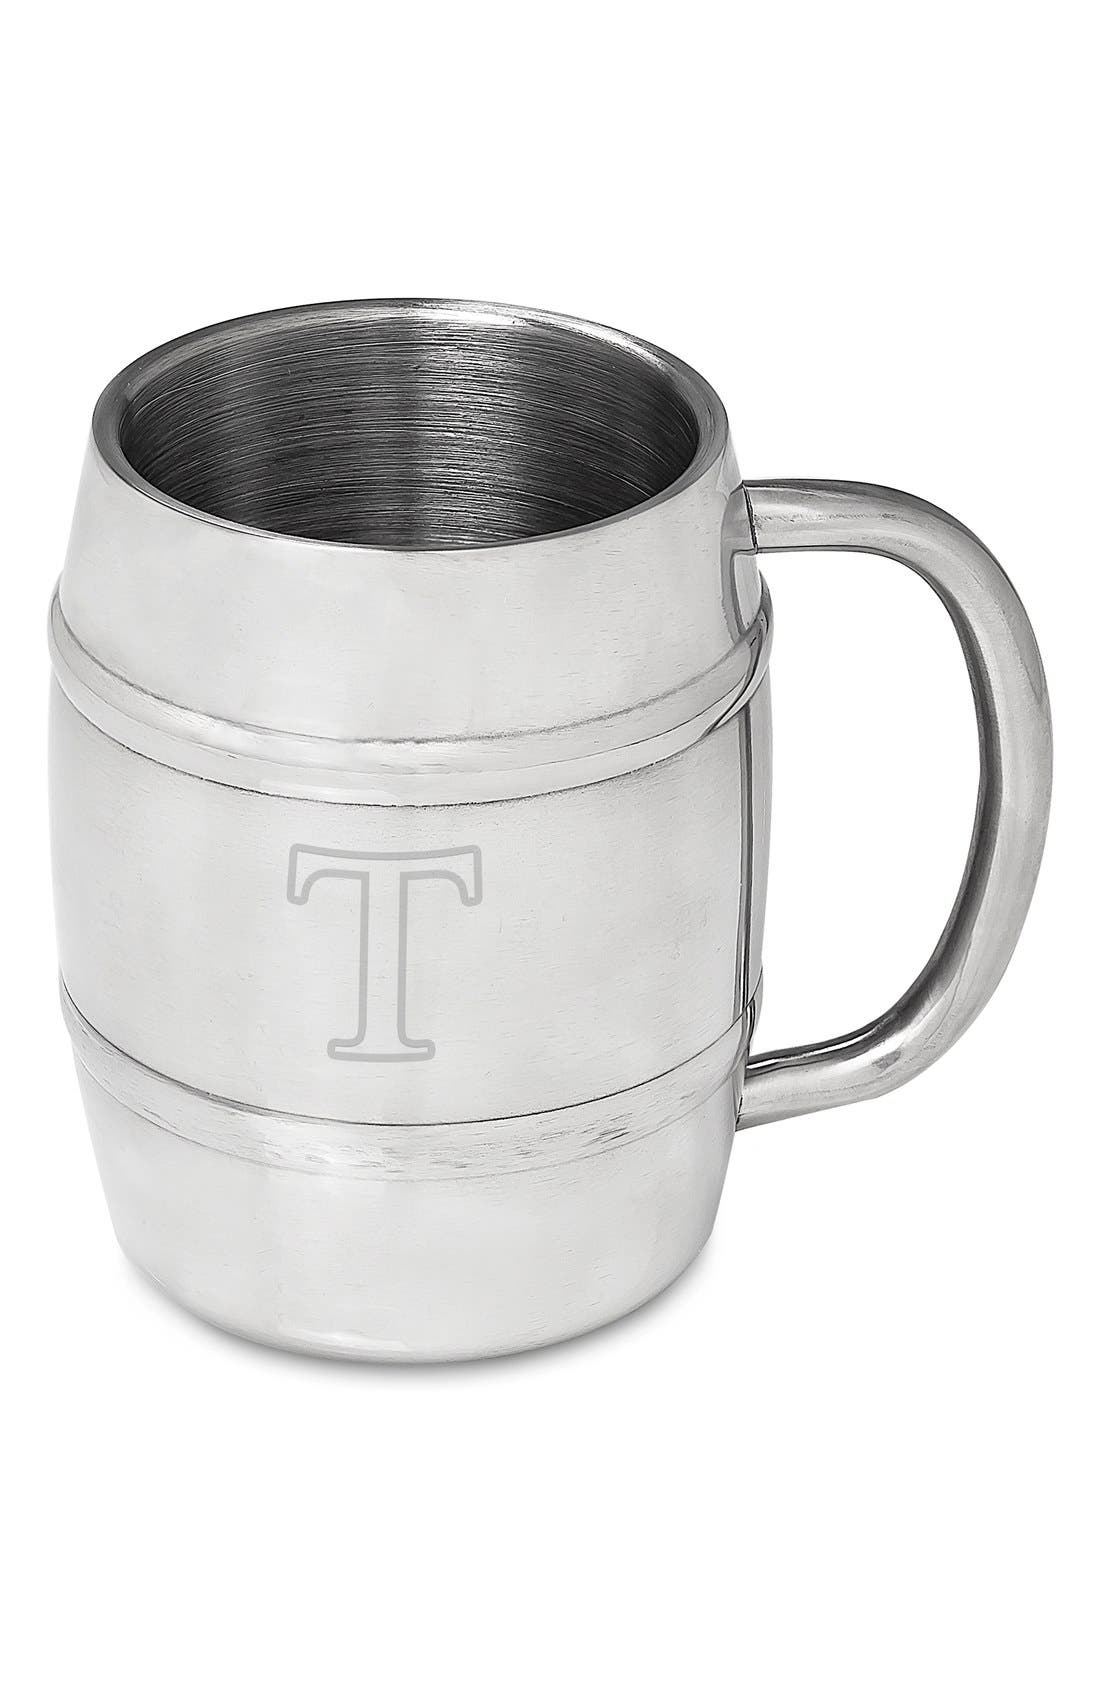 CATHY'S CONCEPTS Monogram Stainless Steel Keg Mug